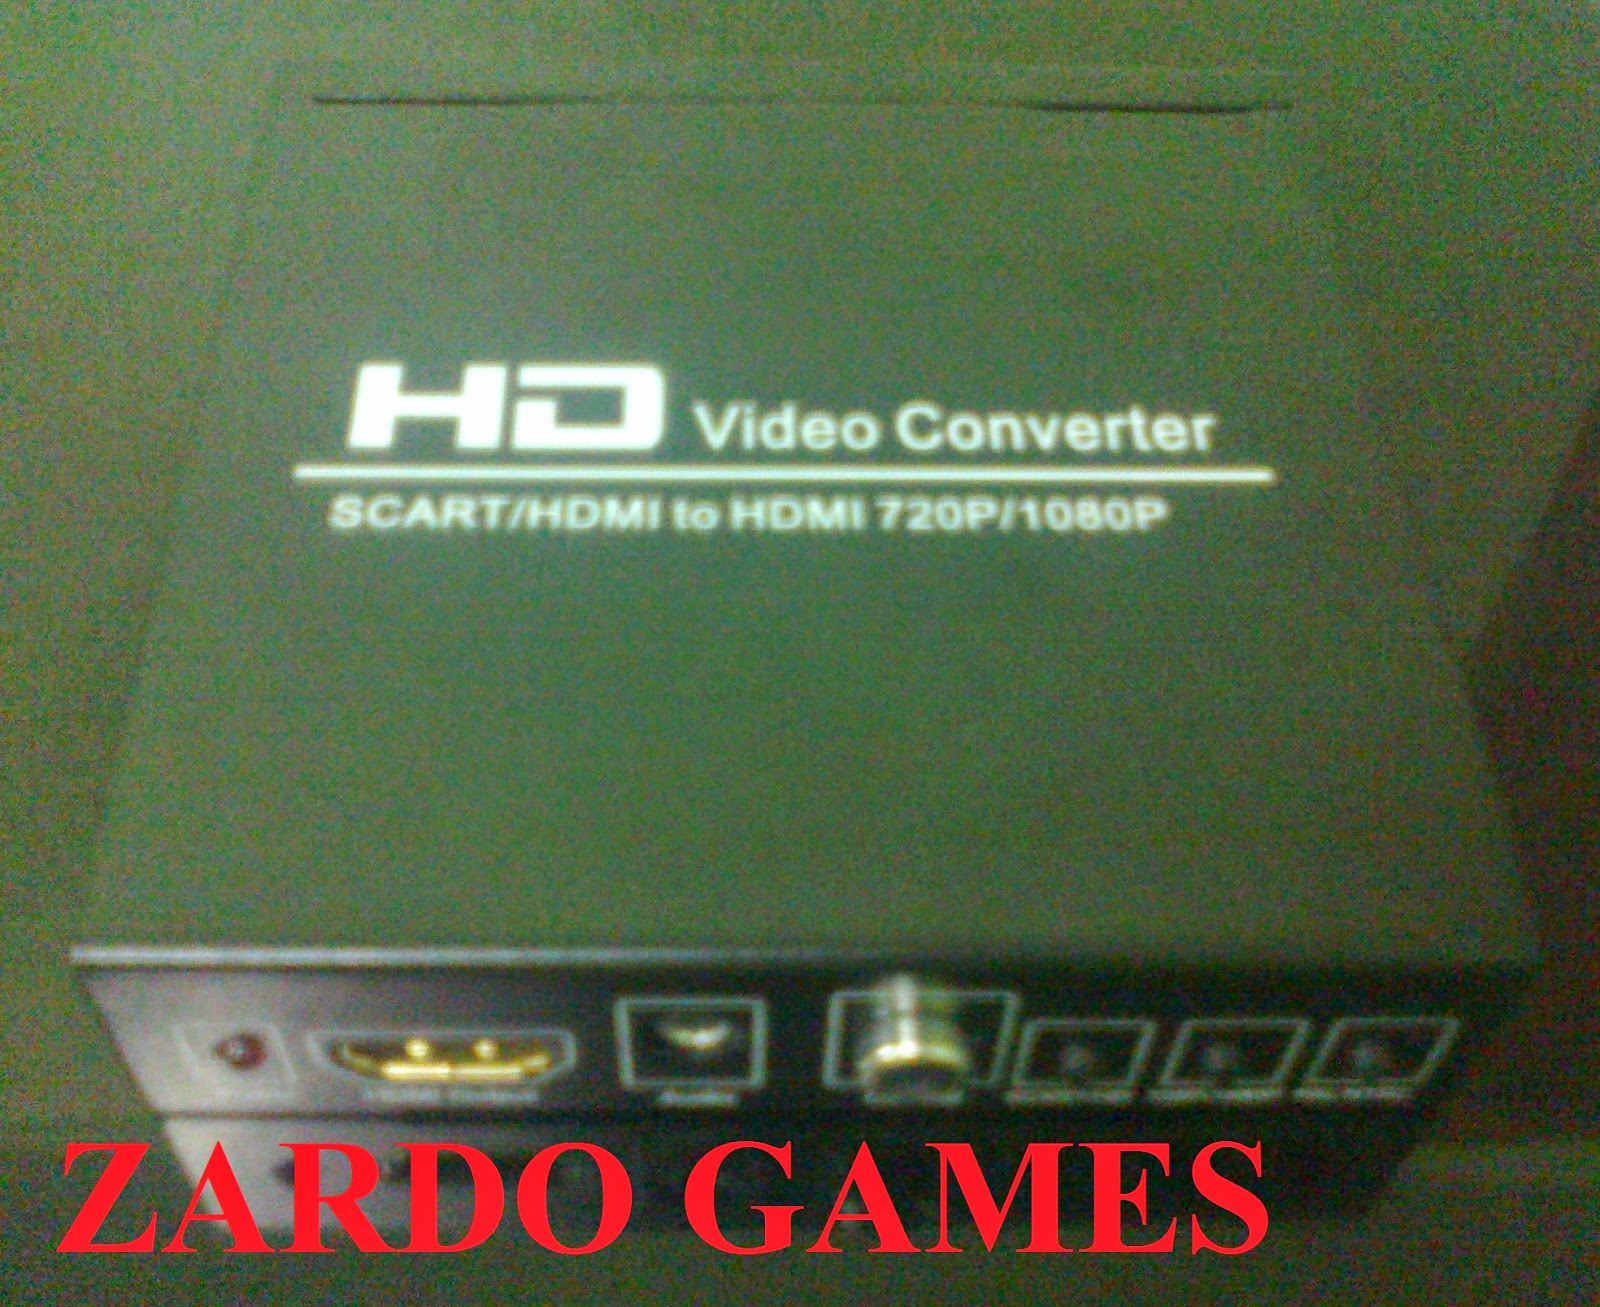 zardo games review hd video converter scart hdmi to hdmi 720p 1080p upscaller. Black Bedroom Furniture Sets. Home Design Ideas